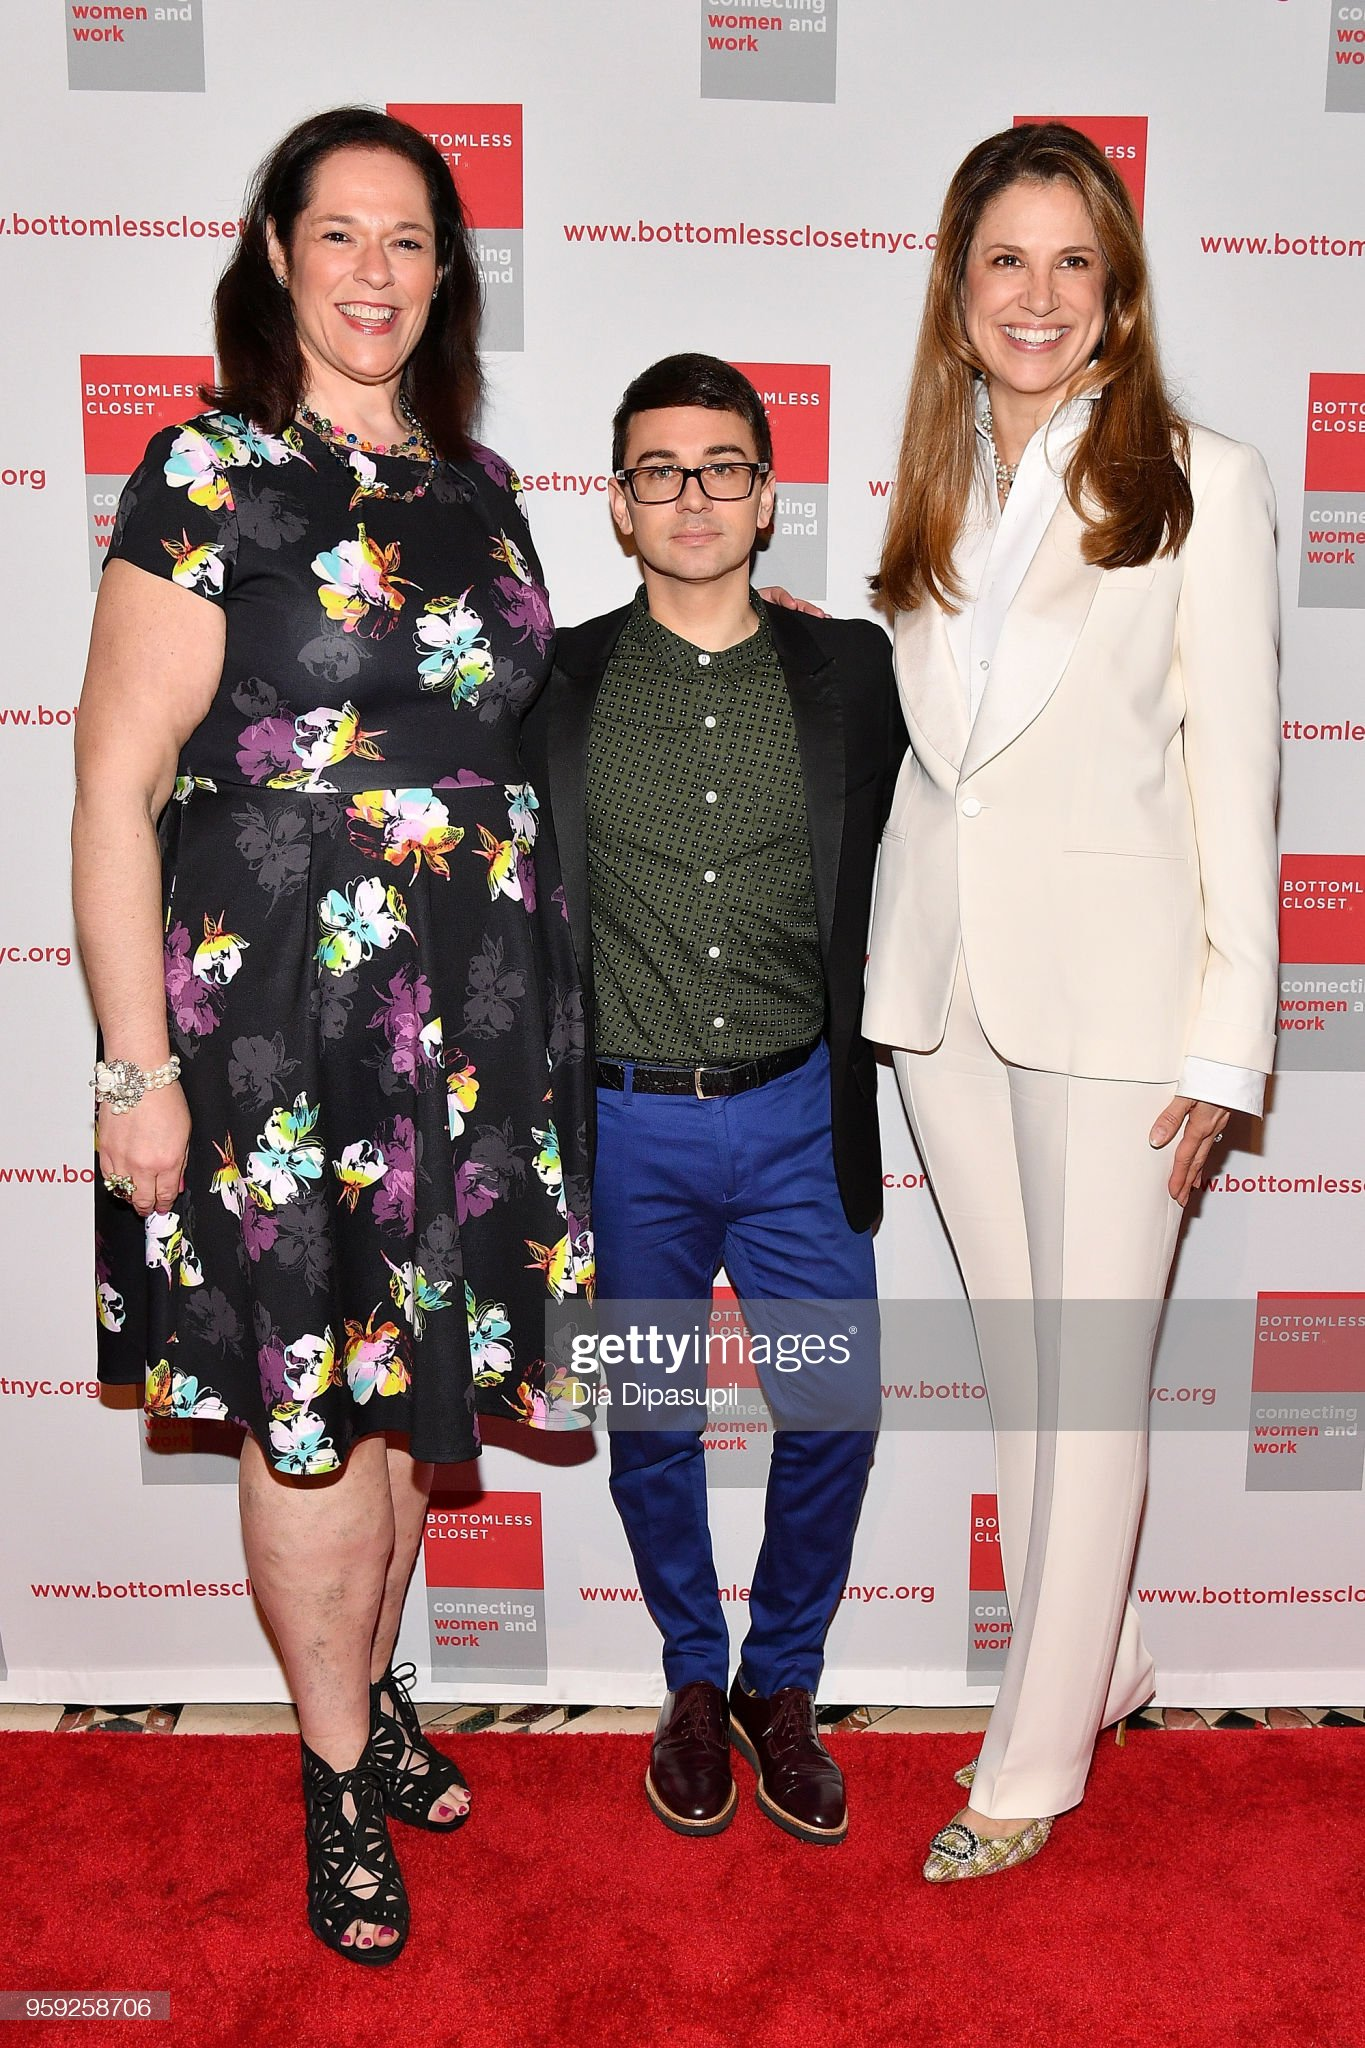 ¿Cuánto mide Melissa Norden? - Altura - Real height Melissa-norden-christian-siriano-and-nada-stirratt-attend-the-19th-picture-id959258706?s=2048x2048